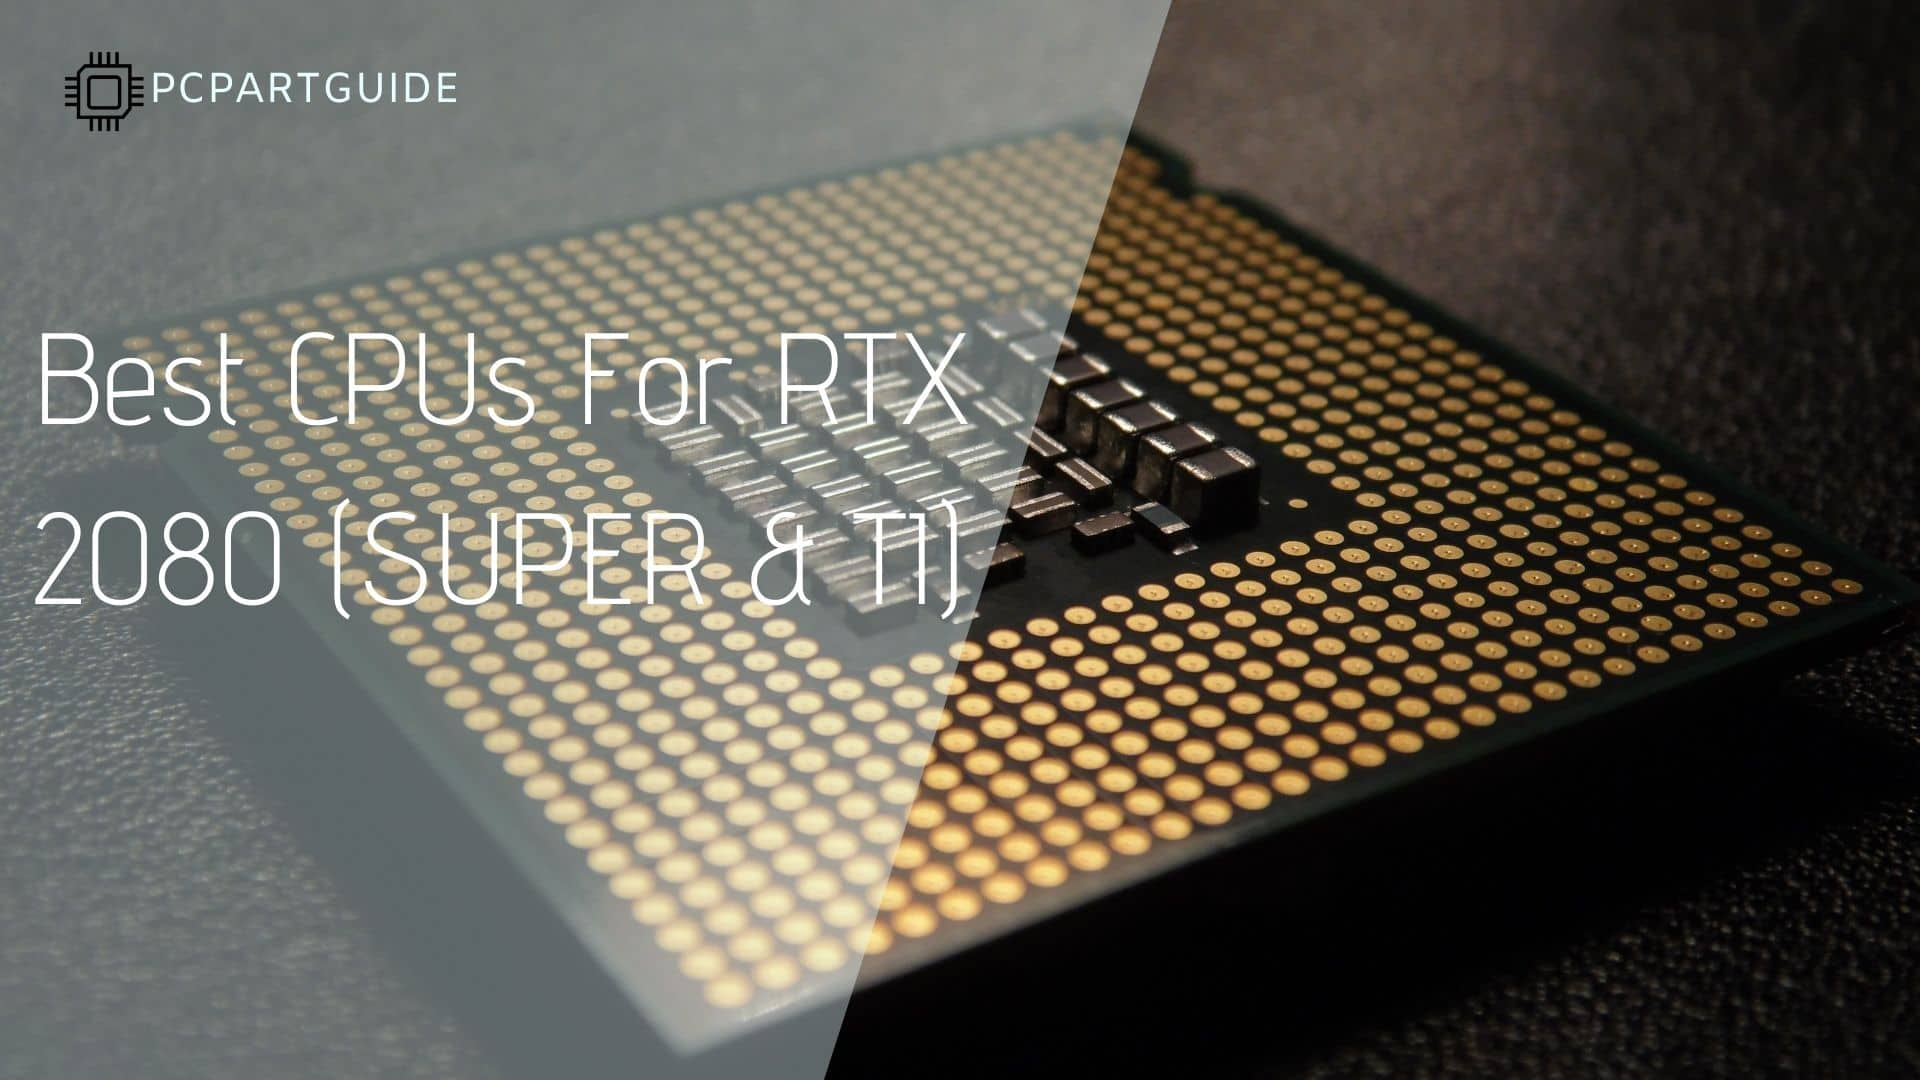 Top 6 CPUs For RTX 2080 (SUPER & TI)